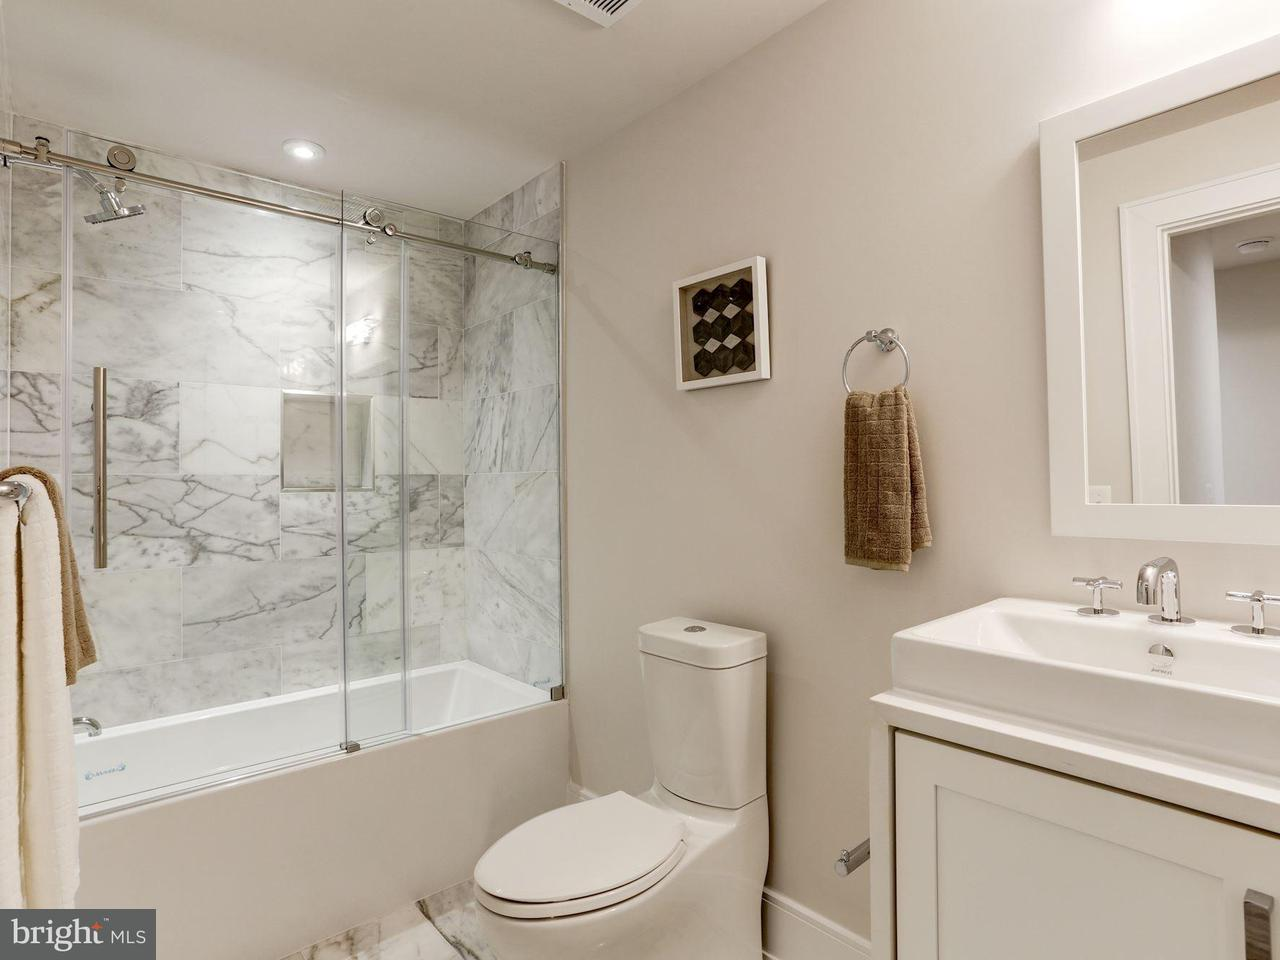 Additional photo for property listing at 2434 16th St Nw #202 2434 16th St Nw #202 Washington, District De Columbia 20009 États-Unis